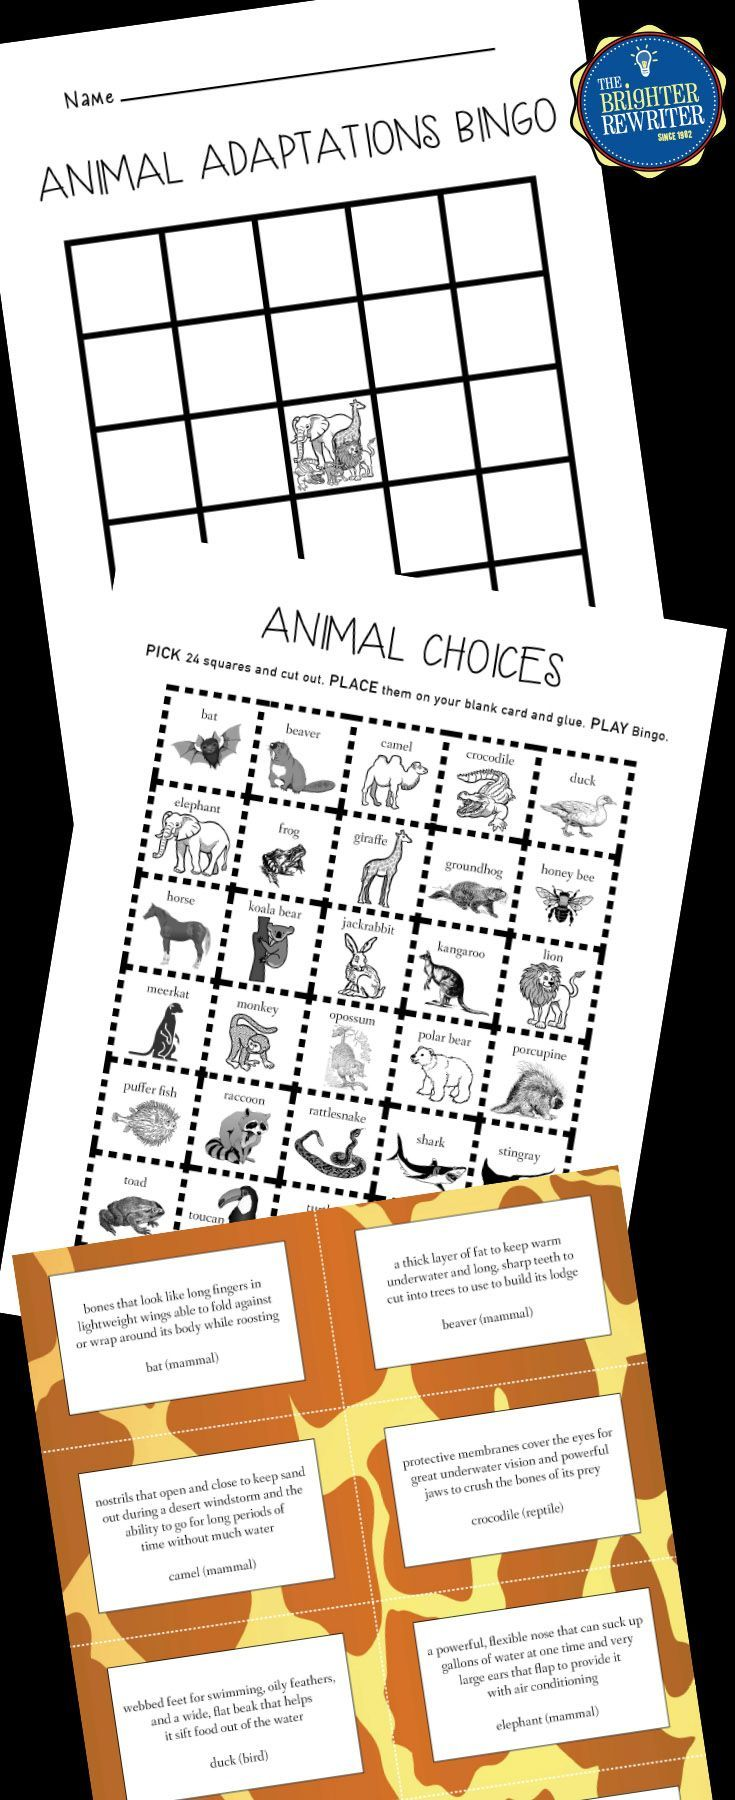 This fun game features 30 different animals and one or more of their physical, behavioral, or camouflage adaptations. The animals include mammals, amphibians, reptiles, birds, fish, and insects. Students create their own bingo cards. The teacher reads an adaptation clue(s) aloud, then students cover the animal name if they have that choice on their cards. There's also a cool mini-poster printable about all the animals and their adaptations. Great for any animal unit!